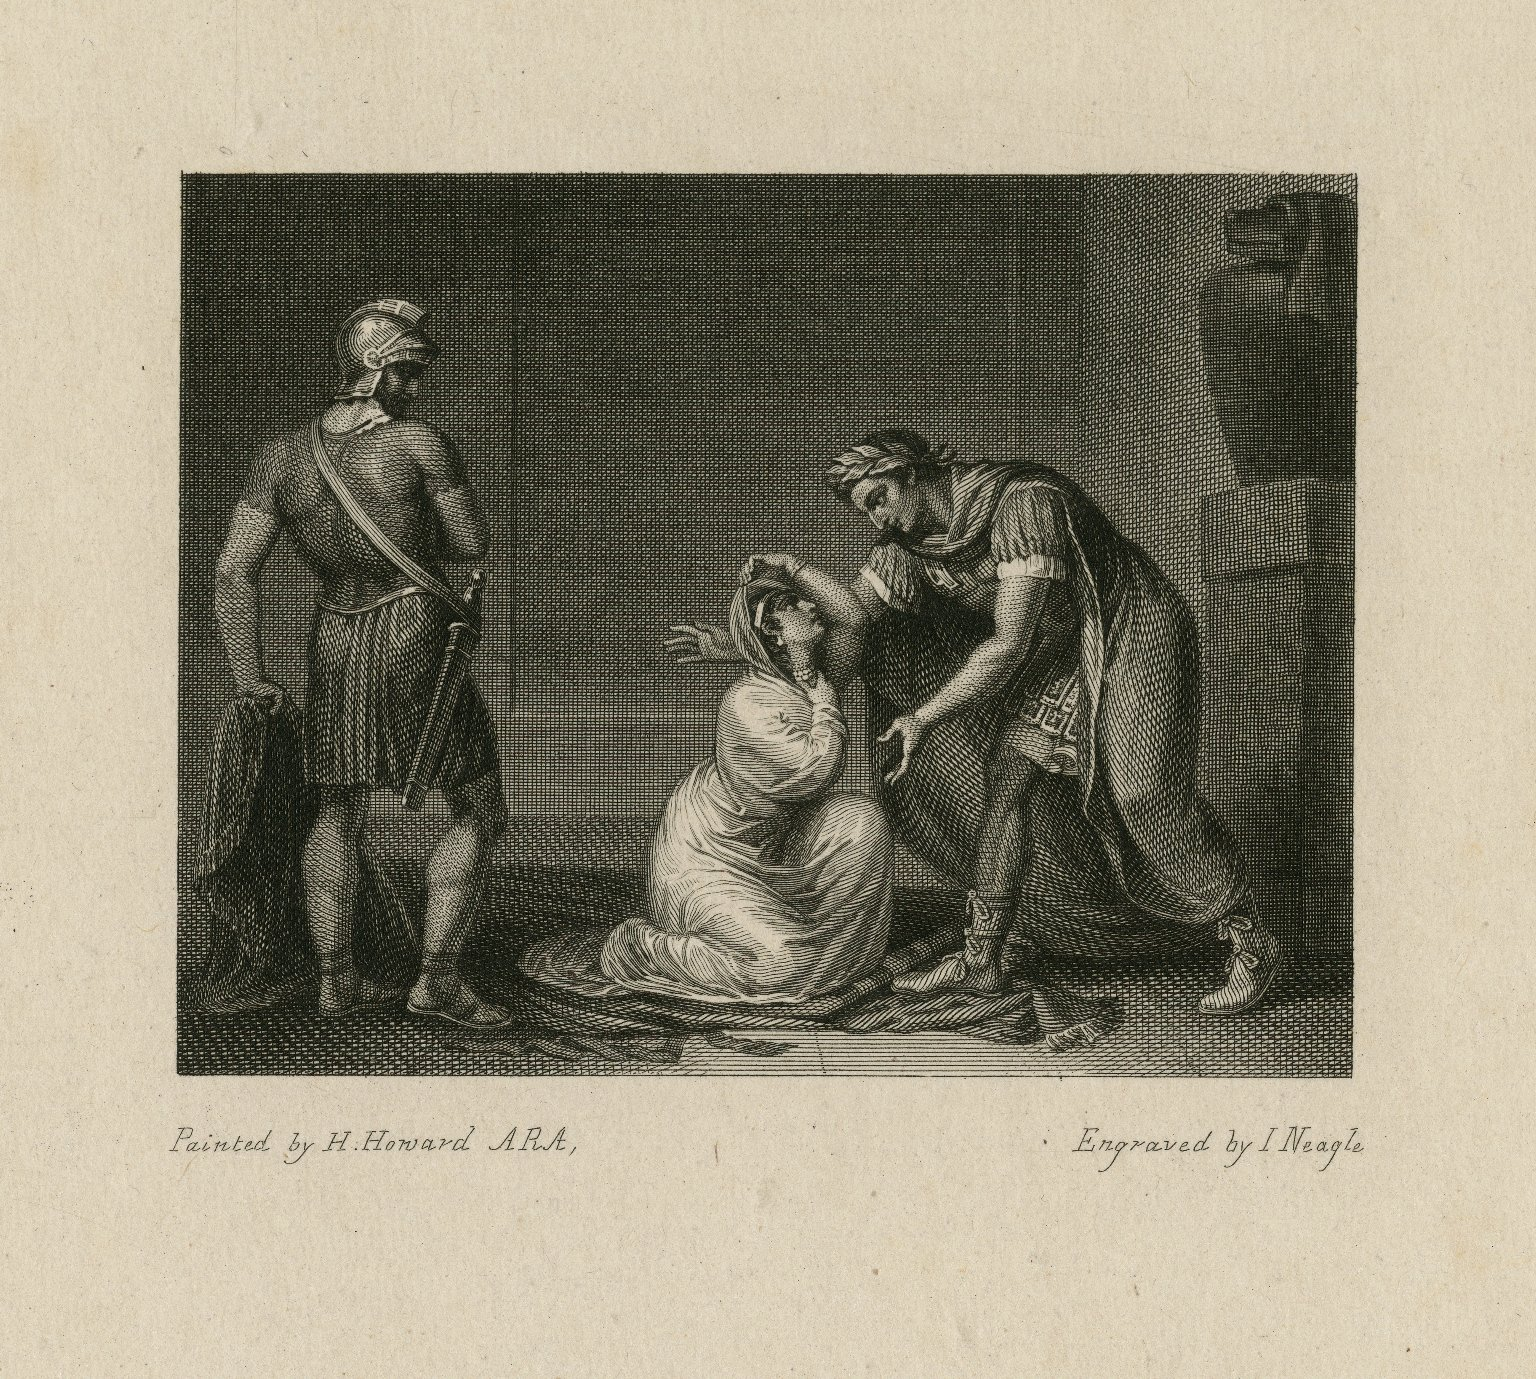 [Cleopatra before Caesar] [graphic] / painted by H. Howard ARA ; engraved by I. Neagle.